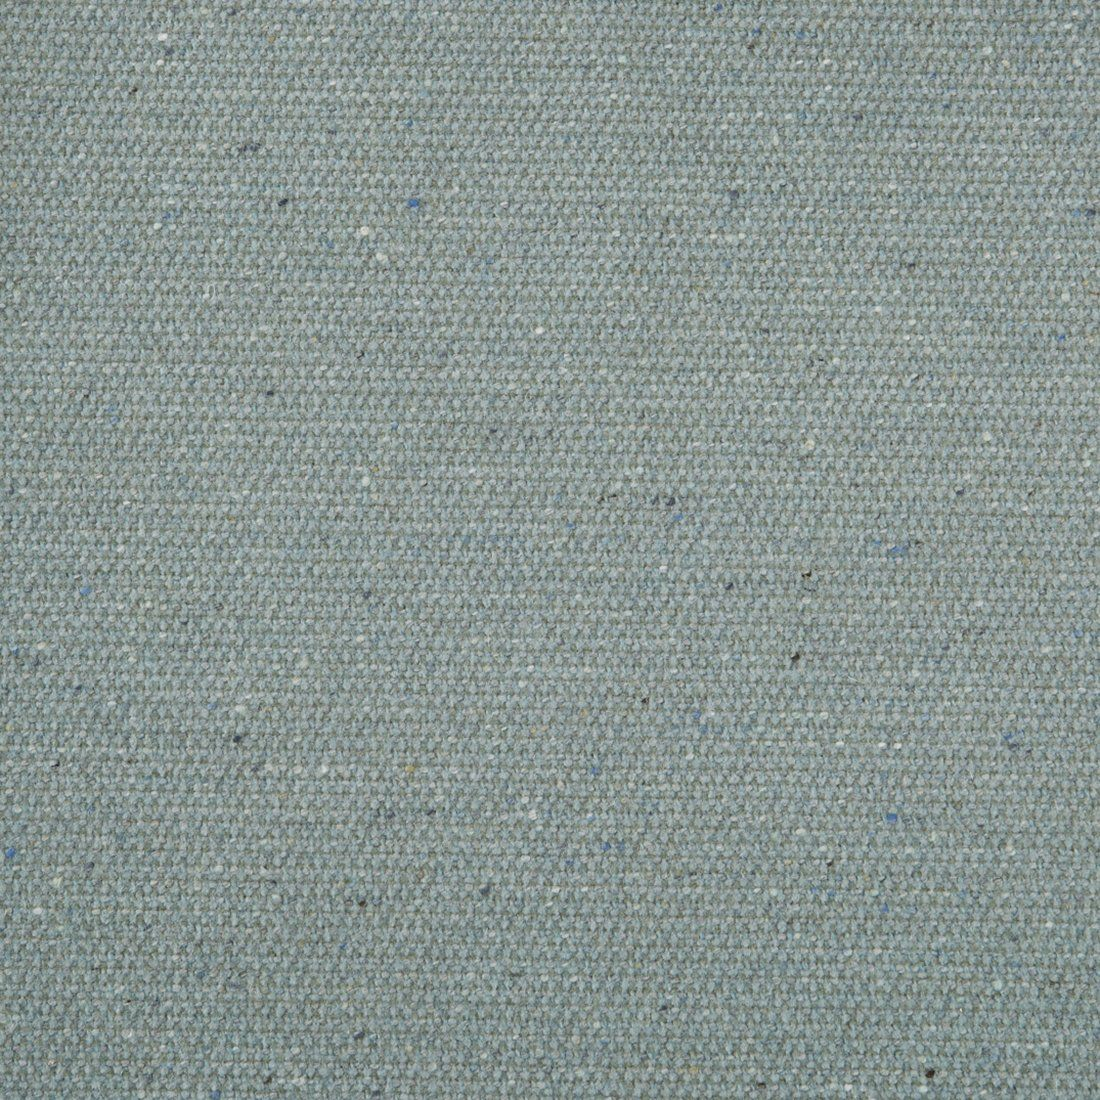 Green Wool Green Solid Woven Wool Upholstery Fabric